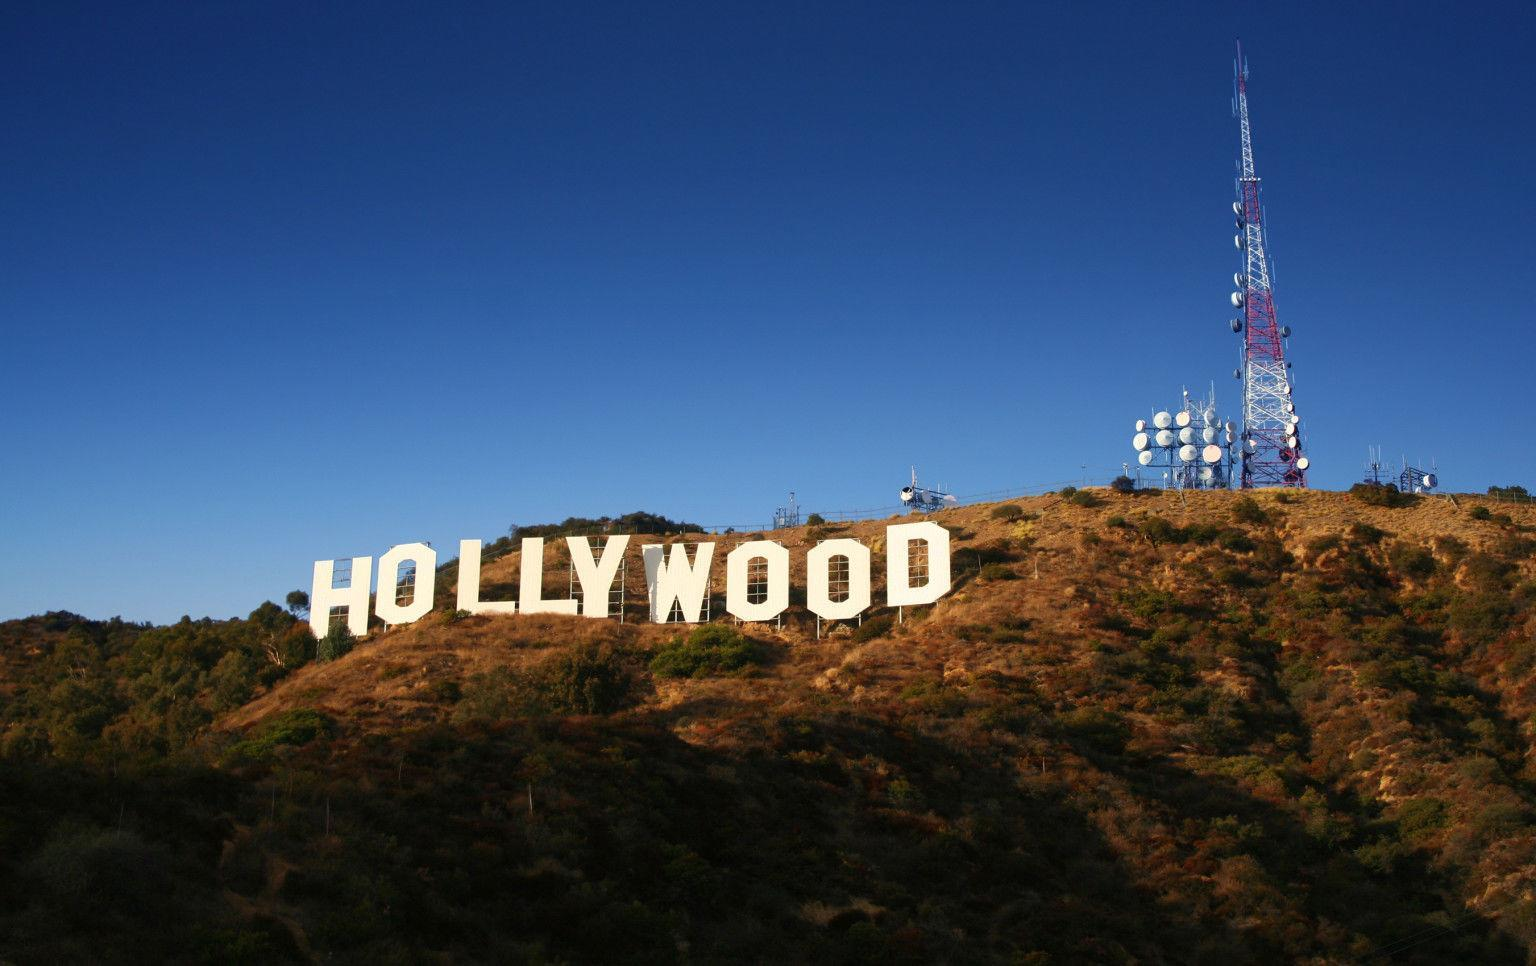 Image - The one place I wanna visit most. I used to have dreams of it everyday. I just wanna see the sign in person. ...